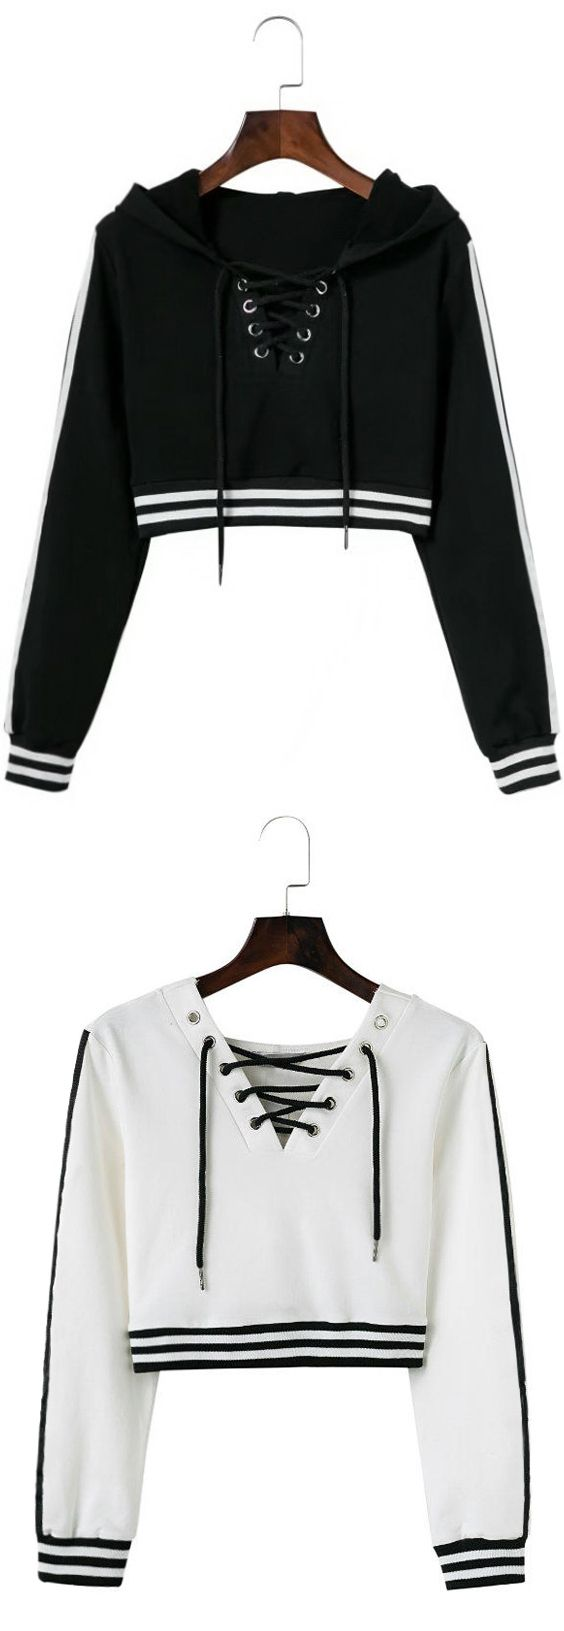 Up to 80% OFF!  Lace Up Striped Cropped Hoodie. Zaful,zaful.com,zaful fashion,tops,womens tops,outerwear,sweatshirts,hoodies,hoodies outfit,hoodies for teens,sweatshirts outfit,long sleeve tops,sweatshirts for teens,winter outfits,fall outfits,tops,sweatshirts for women,women's hoodies,womens sweatshirts,crop top hoodie,cute sweatshirts,floral hoodie,crop hoodies,designer hoodies,oversized sweatshirt @zaful Extra 10% OFF Code:ZF2017